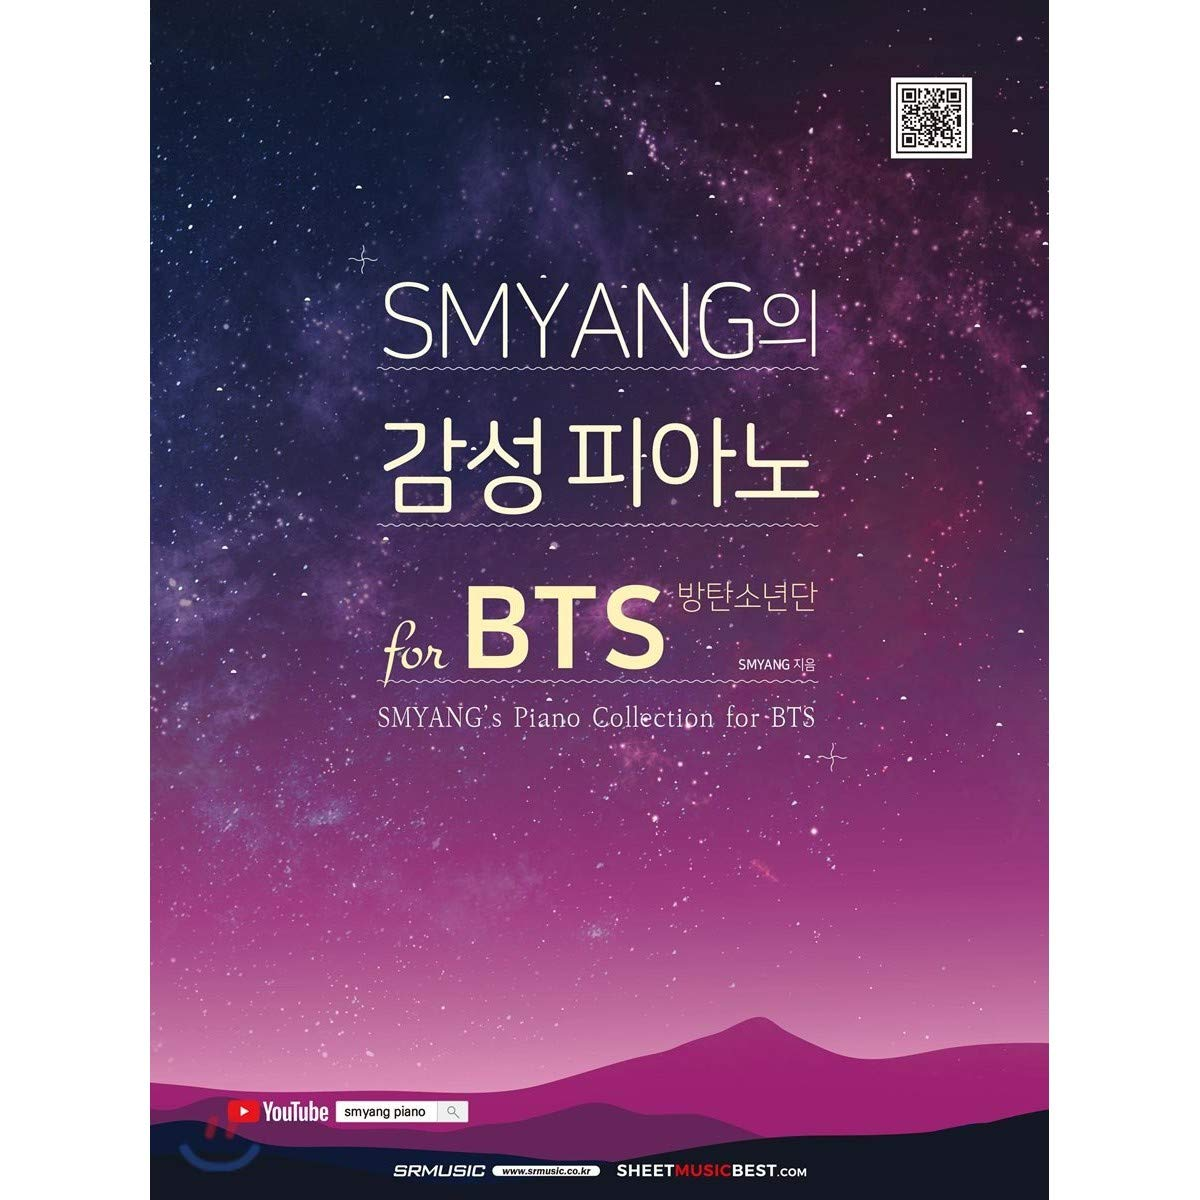 SMYANG's Piano Collection for BTS: SMYANG: 9791186471685